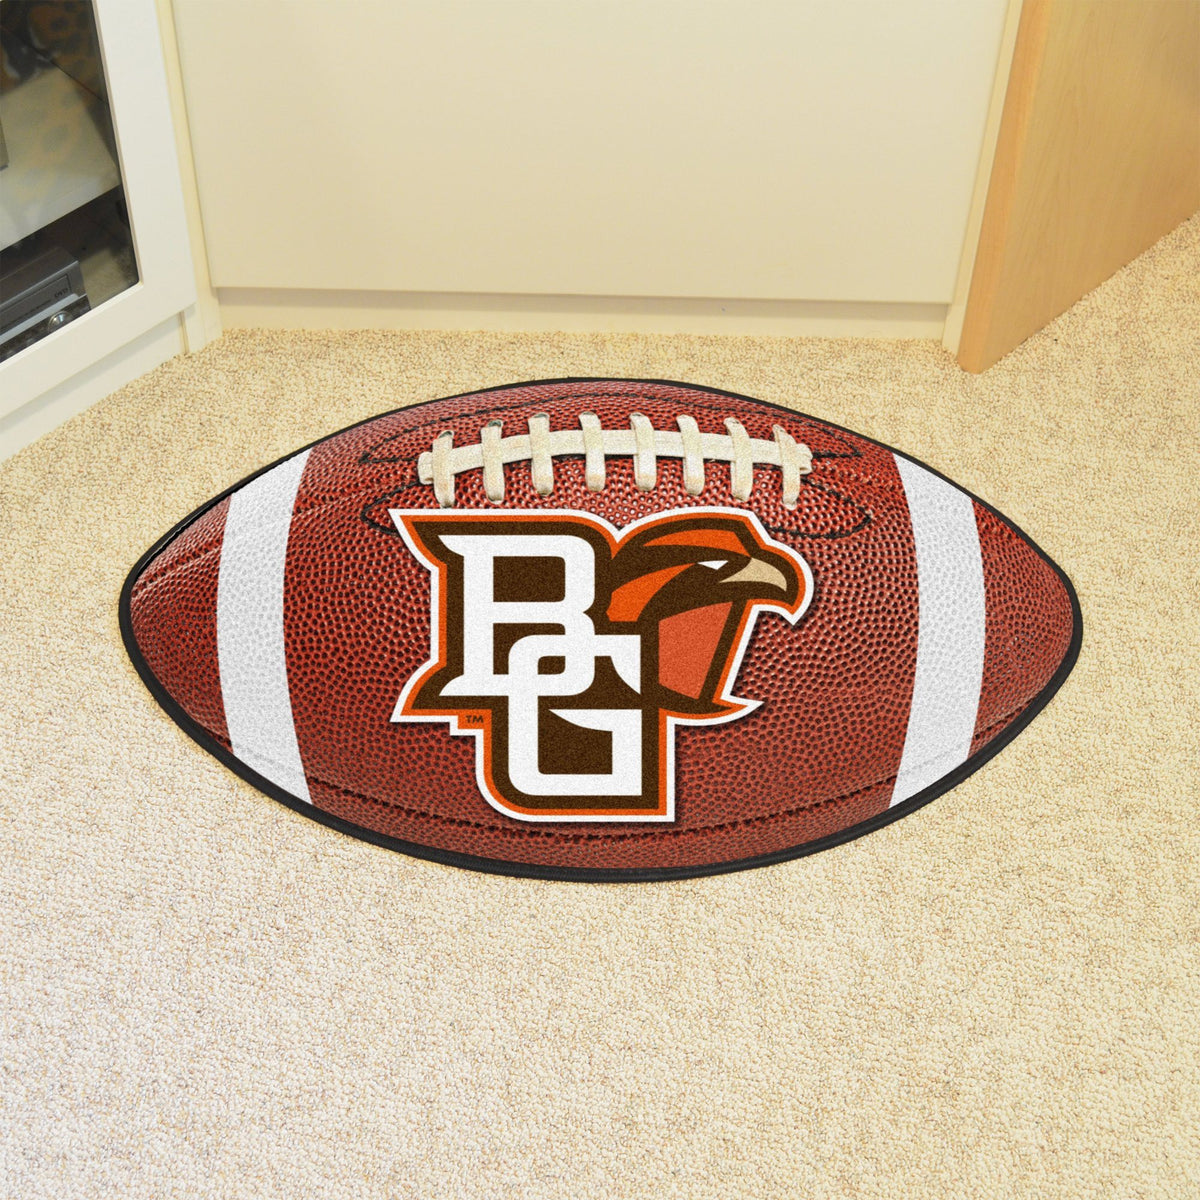 Collegiate - Football Mat: A - K Collegiate Mats, Rectangular Mats, Football Mat, Collegiate, Home Fan Mats Bowling Green